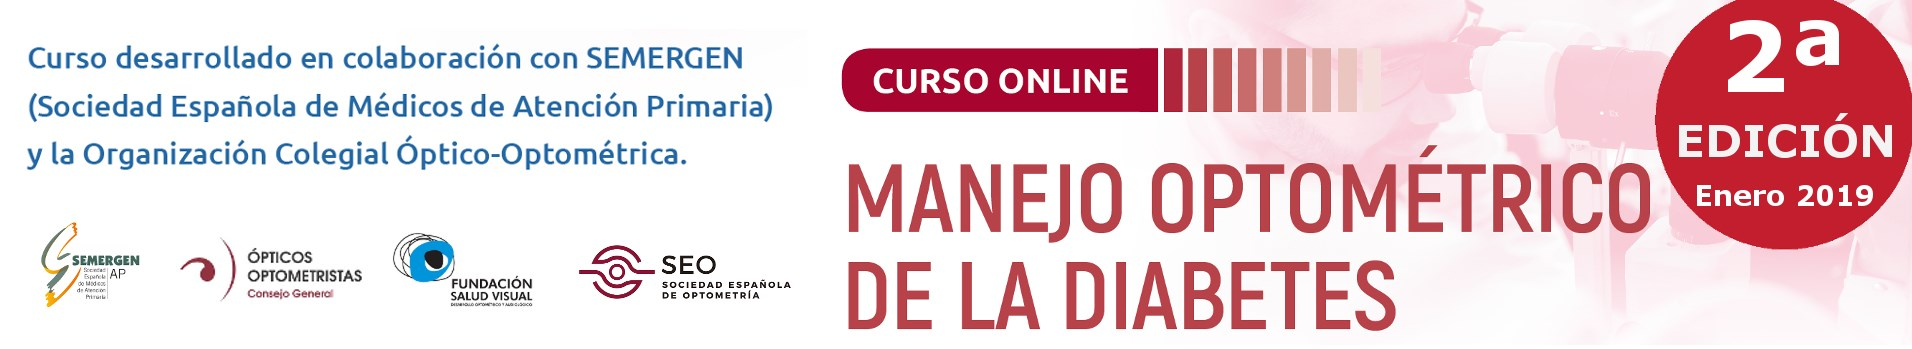 Curso Manejo optométrico de la diabetes